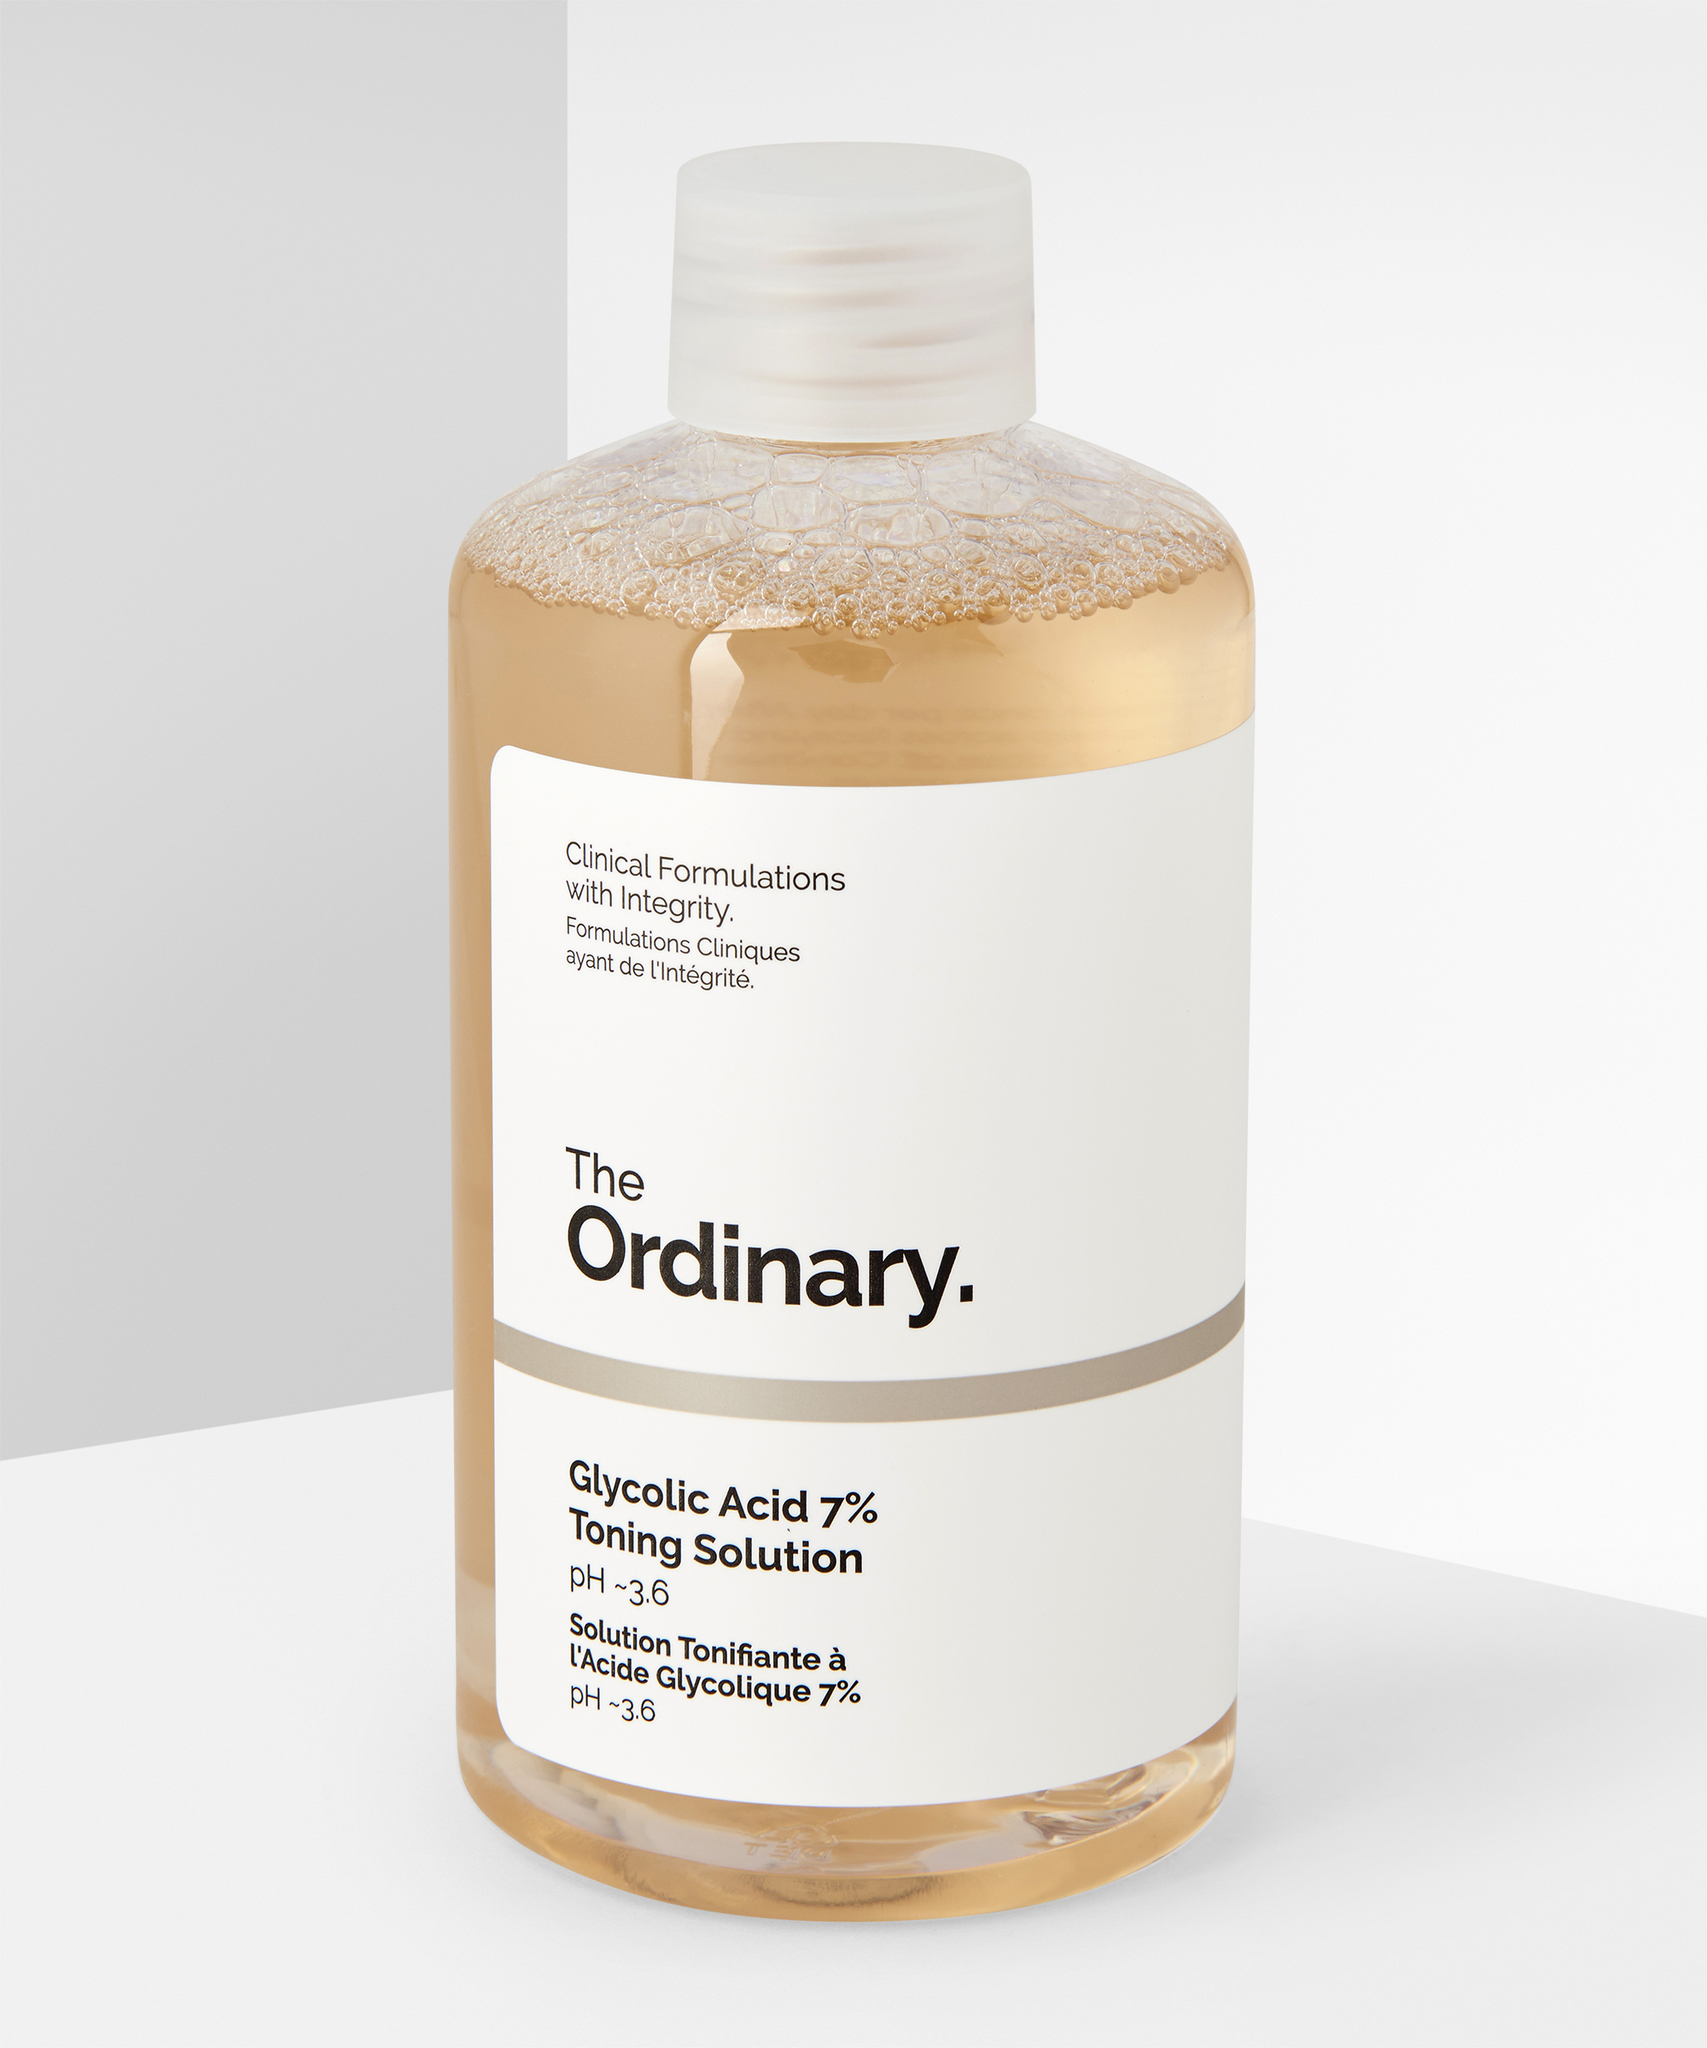 Тоник для лица The Ordinary Glycolic Acid 7% Toning Solution 240ml